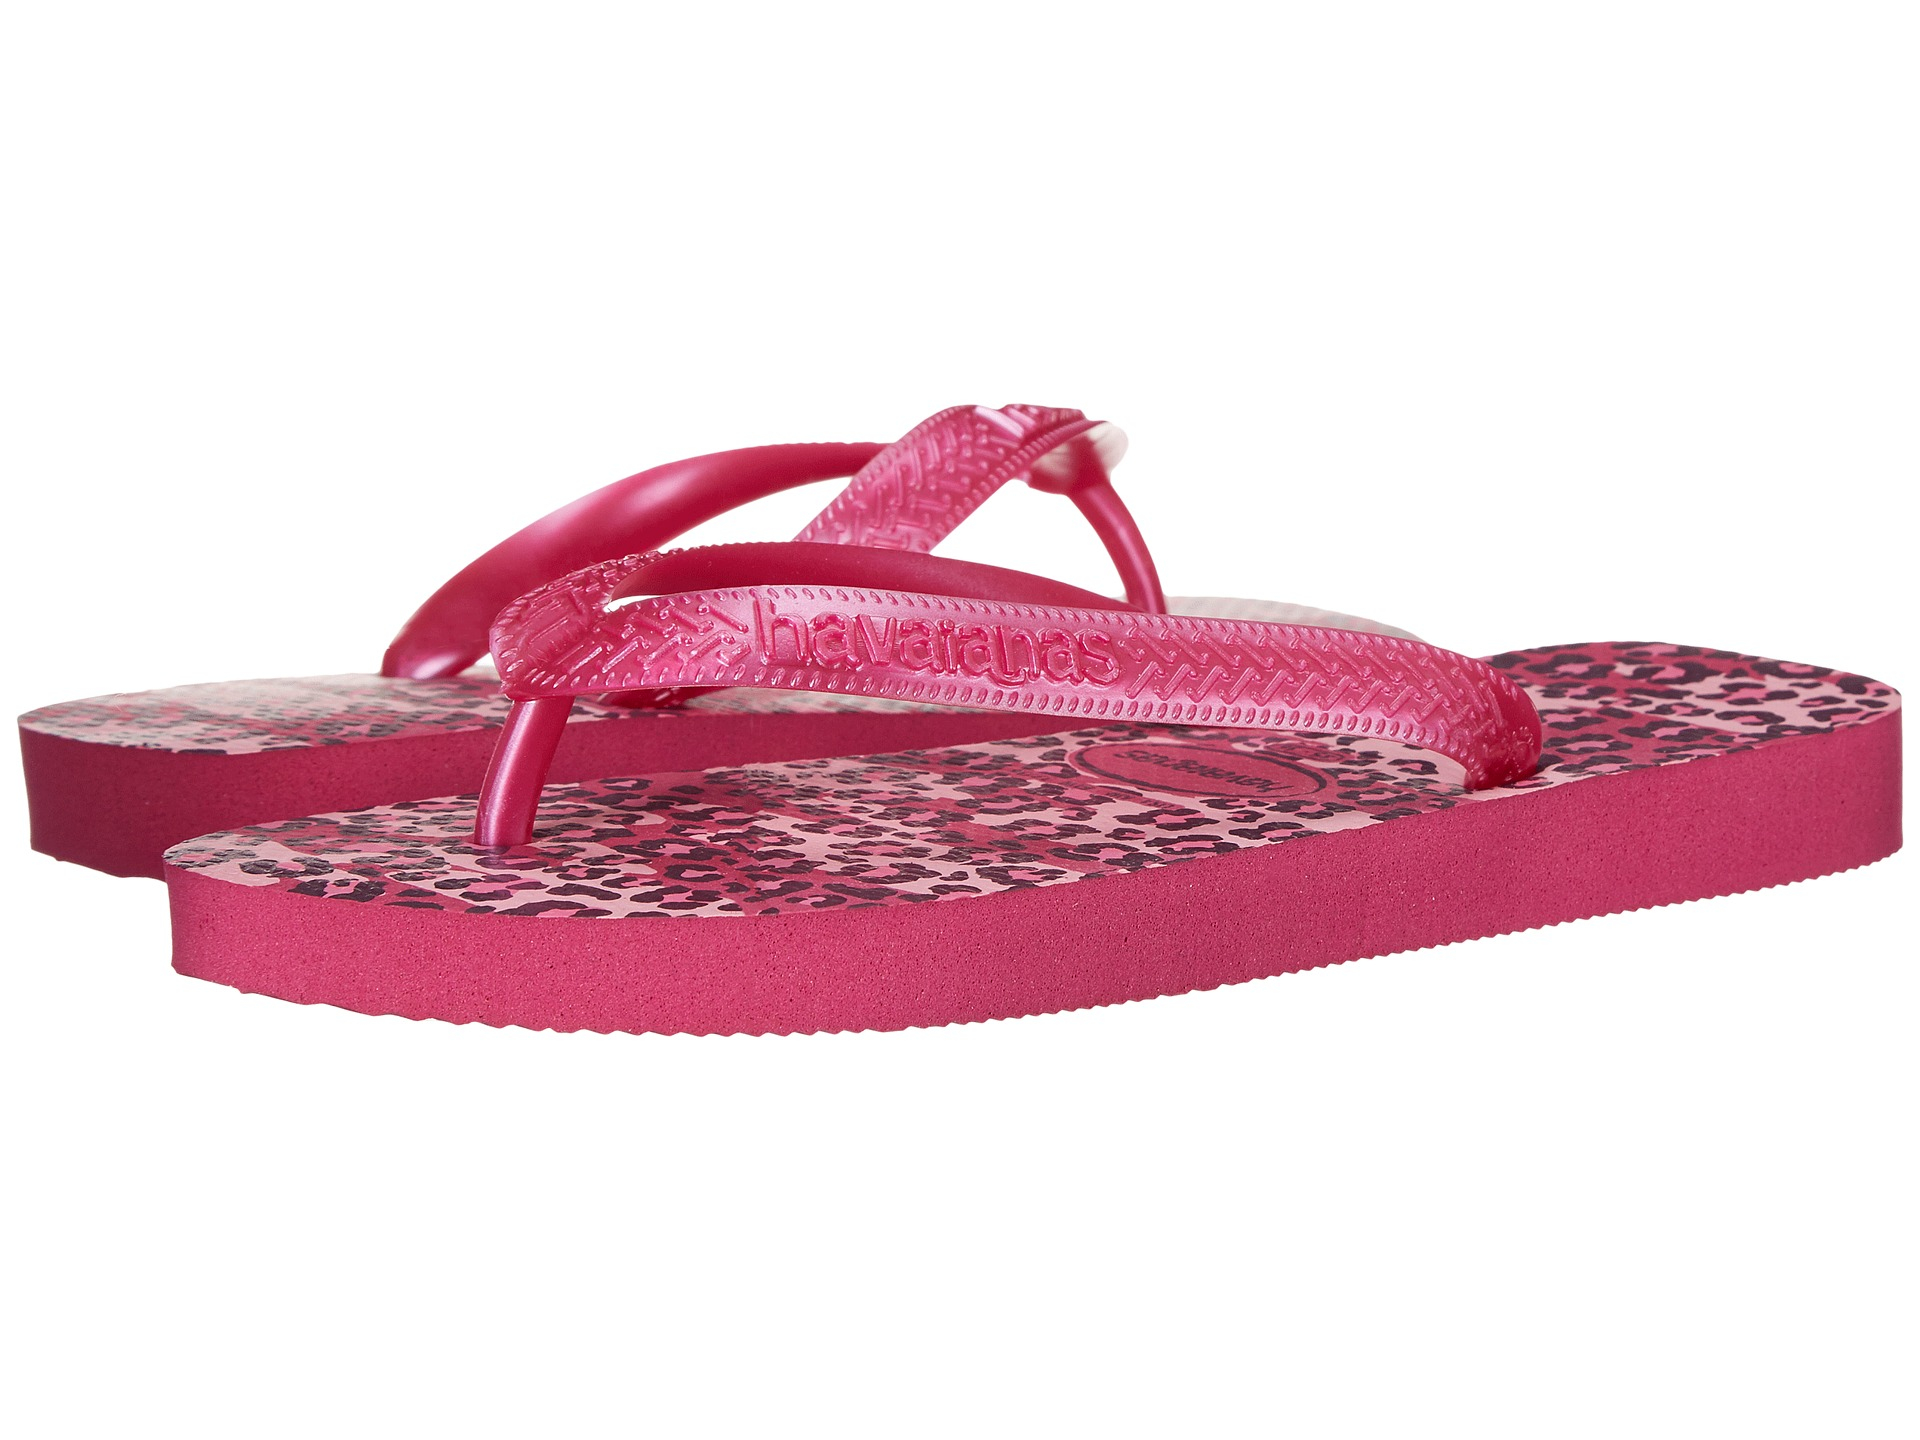 129e2a680 Lyst - Havaianas Top Animals Flip Flops in Red